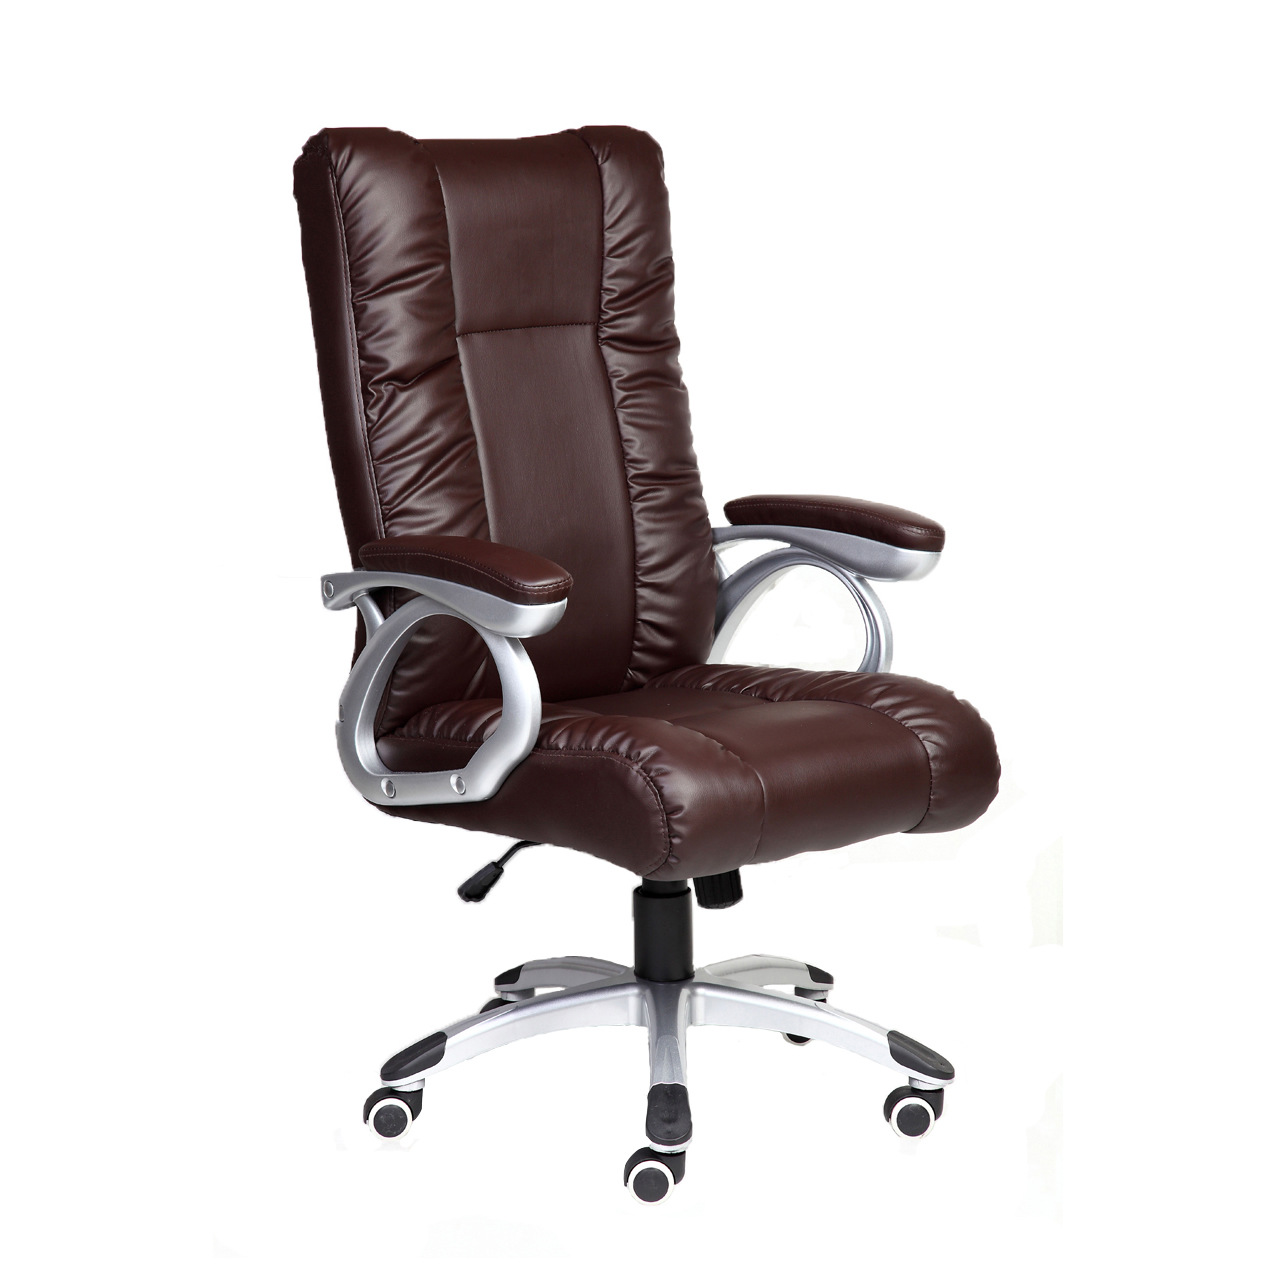 High Quality Ergonomic Executive Office Chair Lifting Swivel Gaming Computer Chair cadeira bureaustoel ergonomisch sedie uffico 240340 high quality back pillow office chair 3d handrail function computer household ergonomic chair 360 degree rotating seat